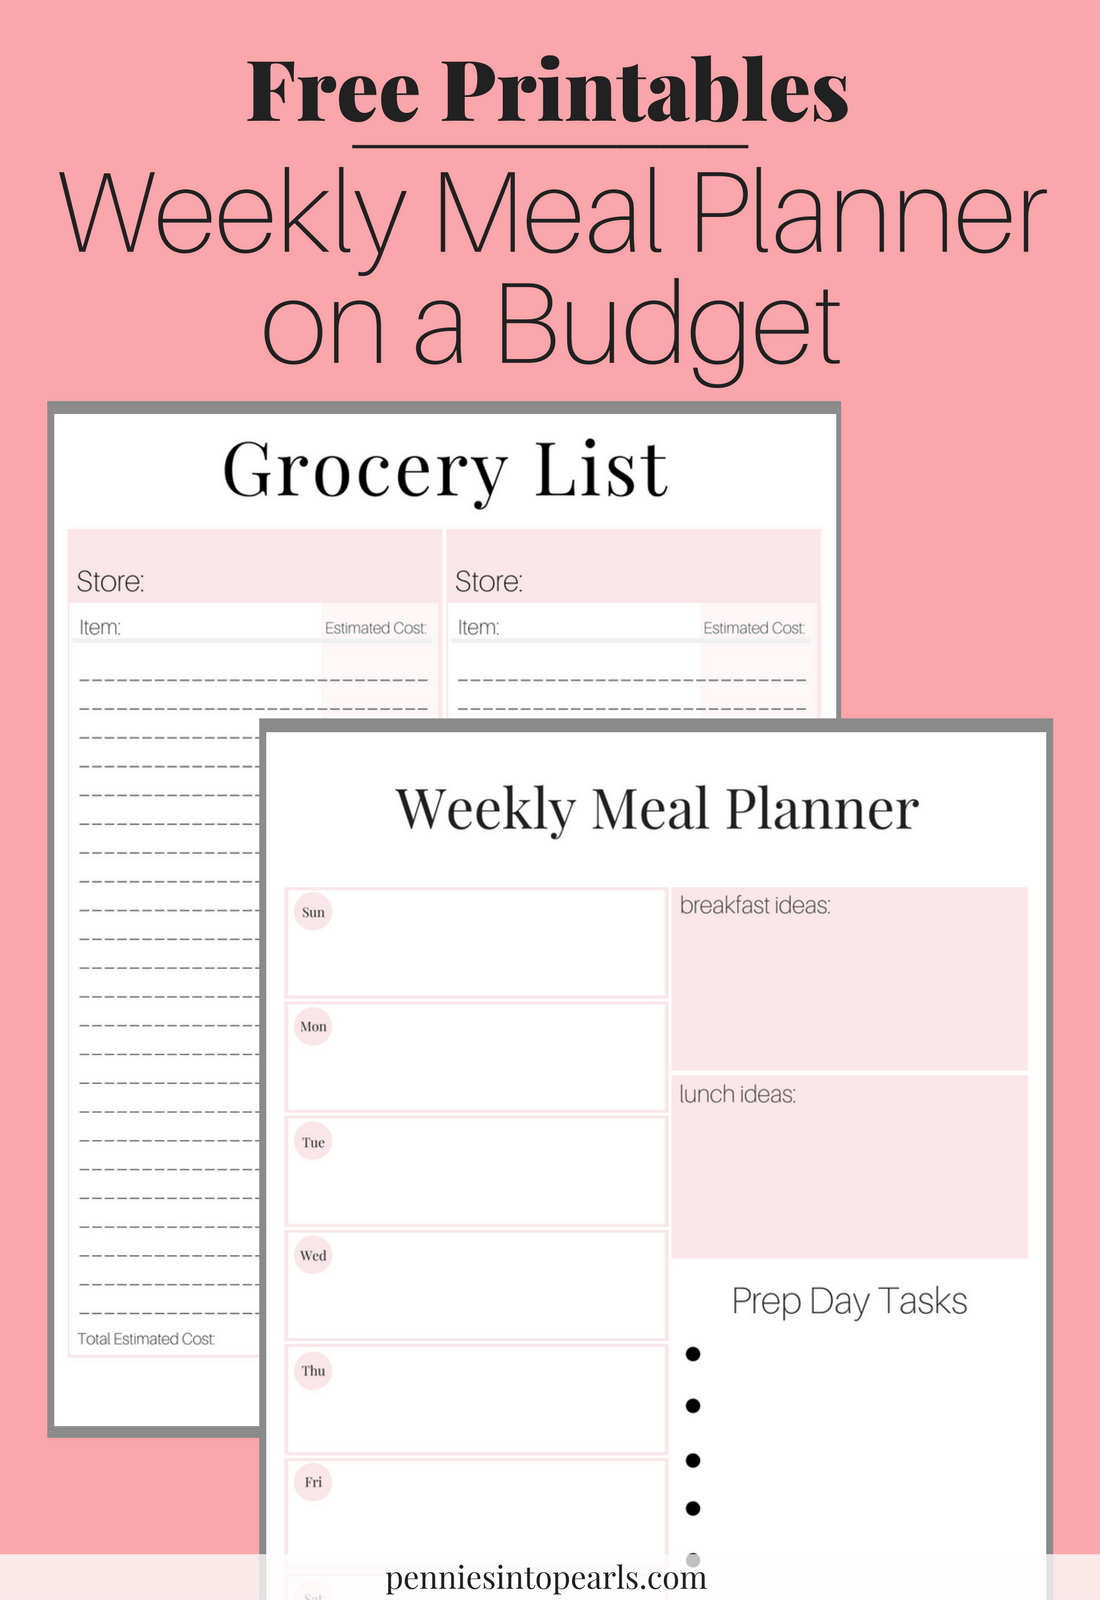 photograph regarding Meal Planner Free Printable known as No cost Printable - Evening meal Developing upon a Spending budget Toolkit